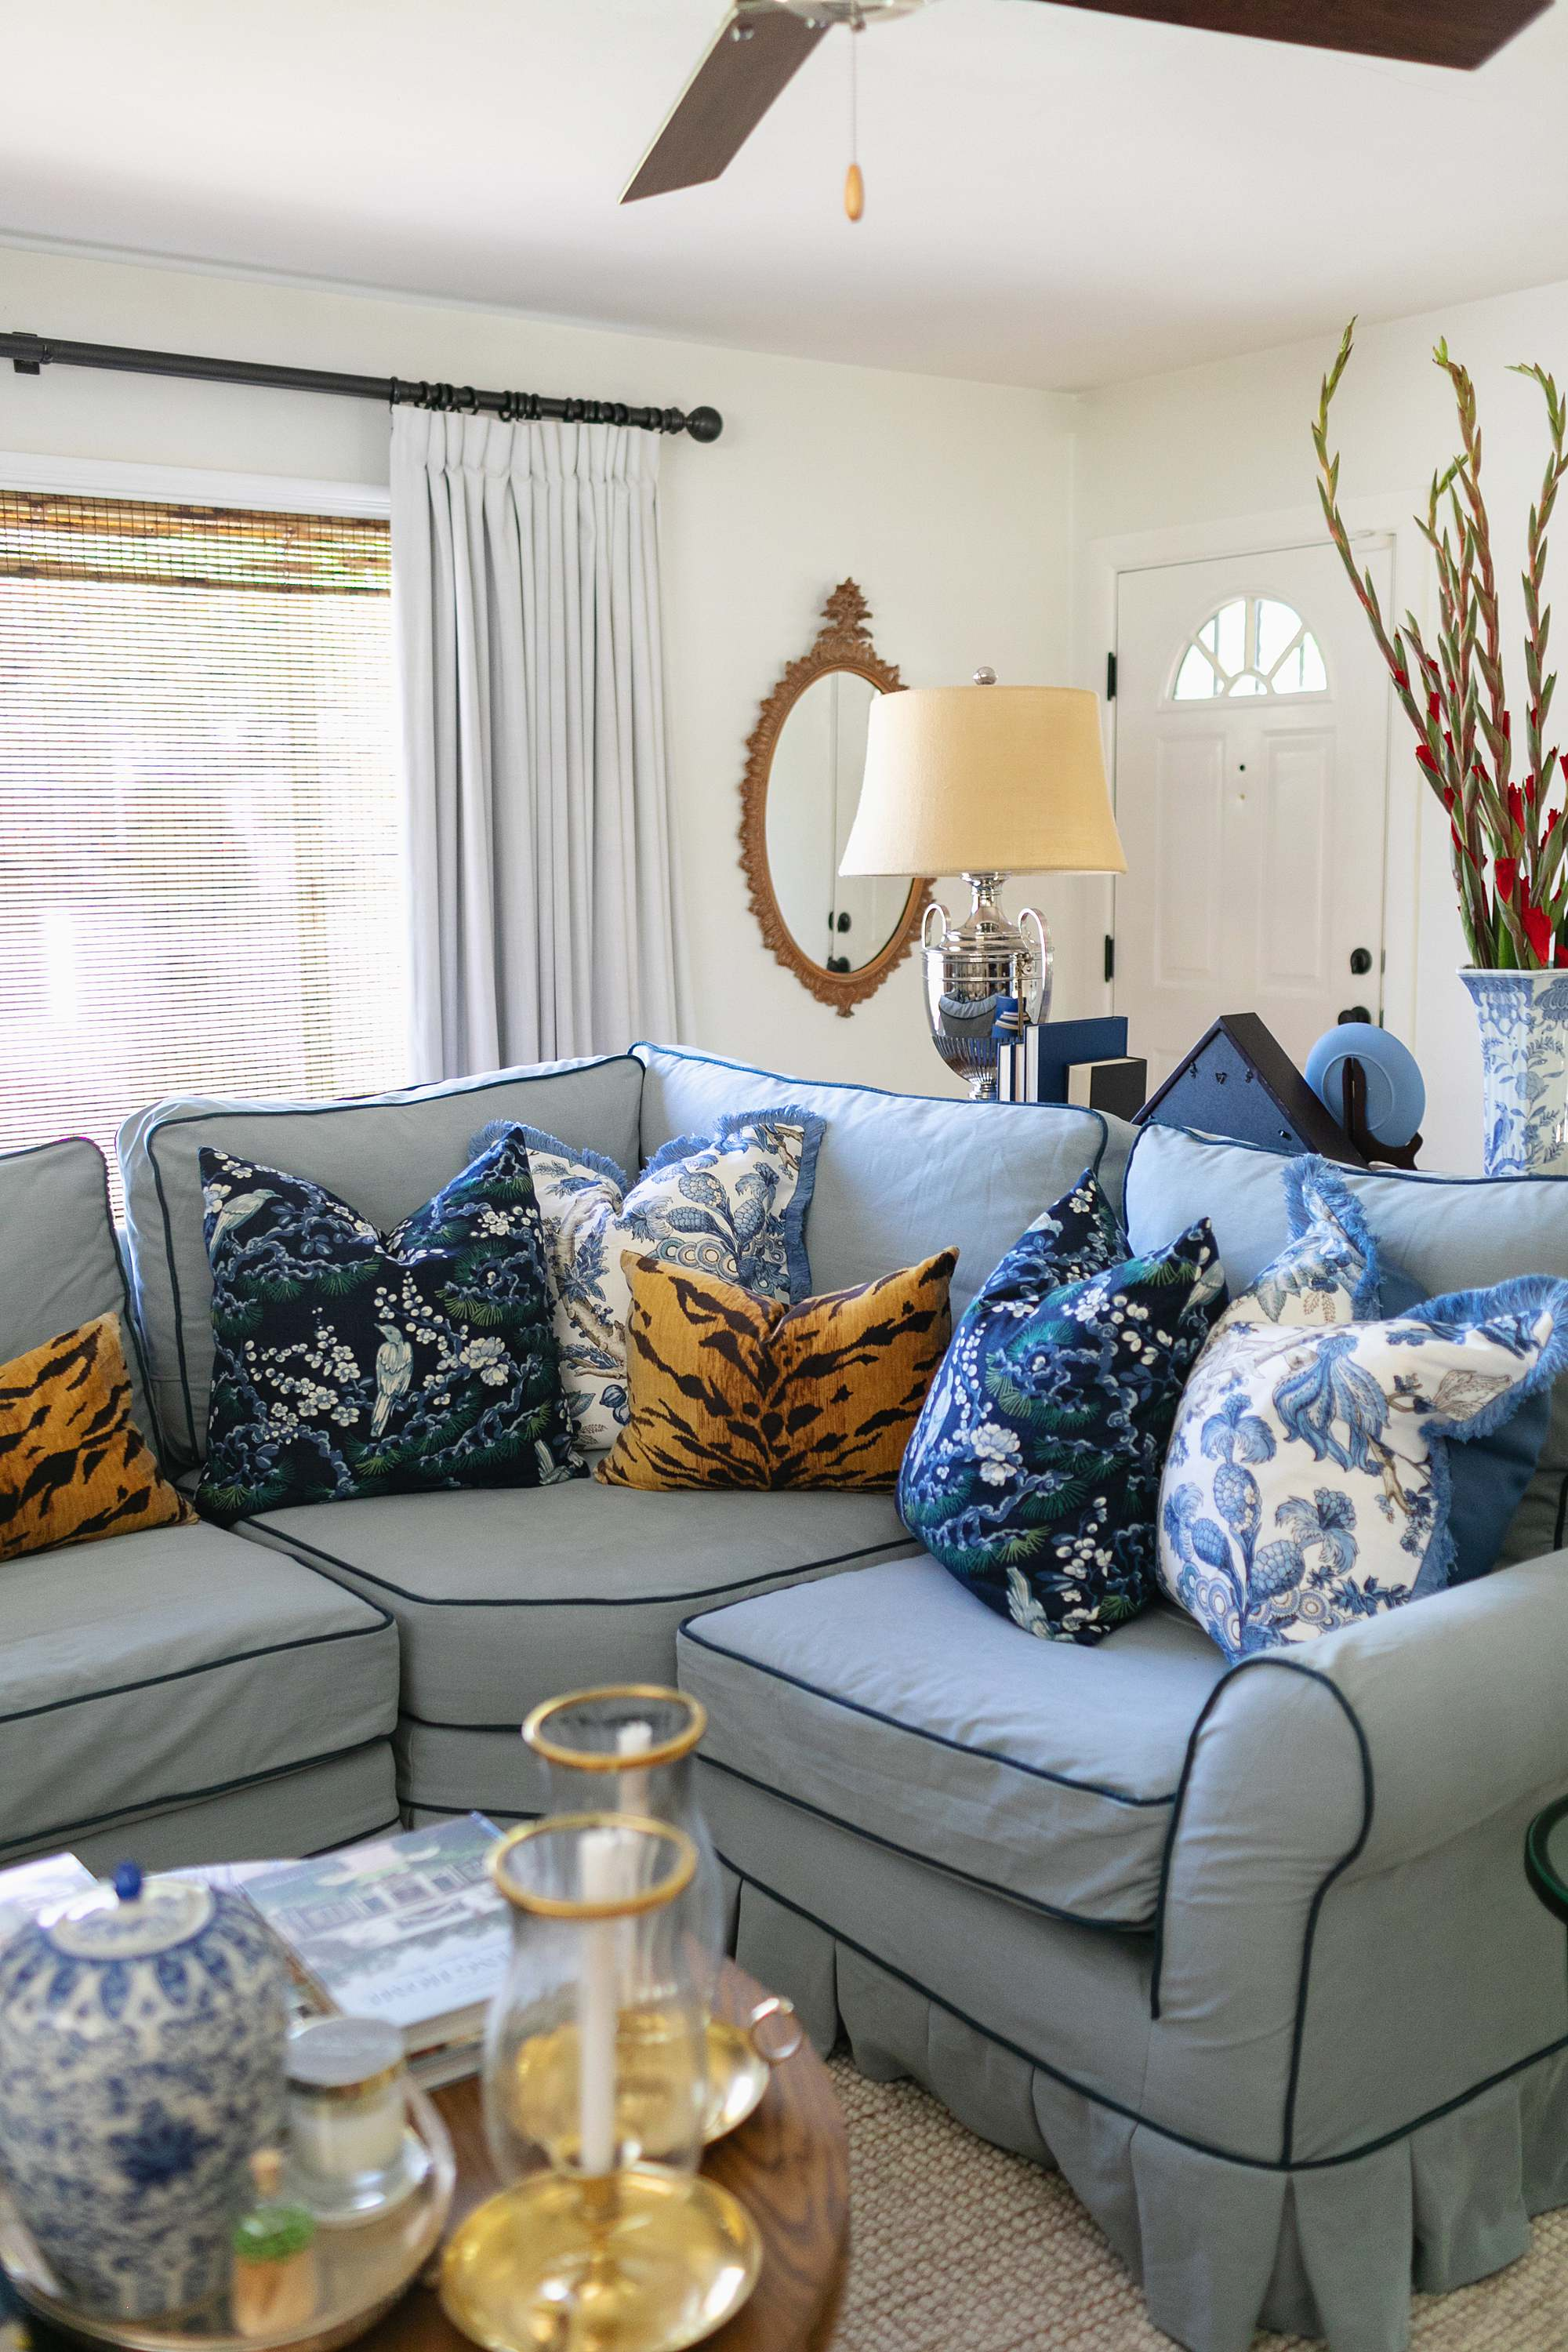 blue and white with tiger print living room blue couch pleated skirt pleats on skirt of couch